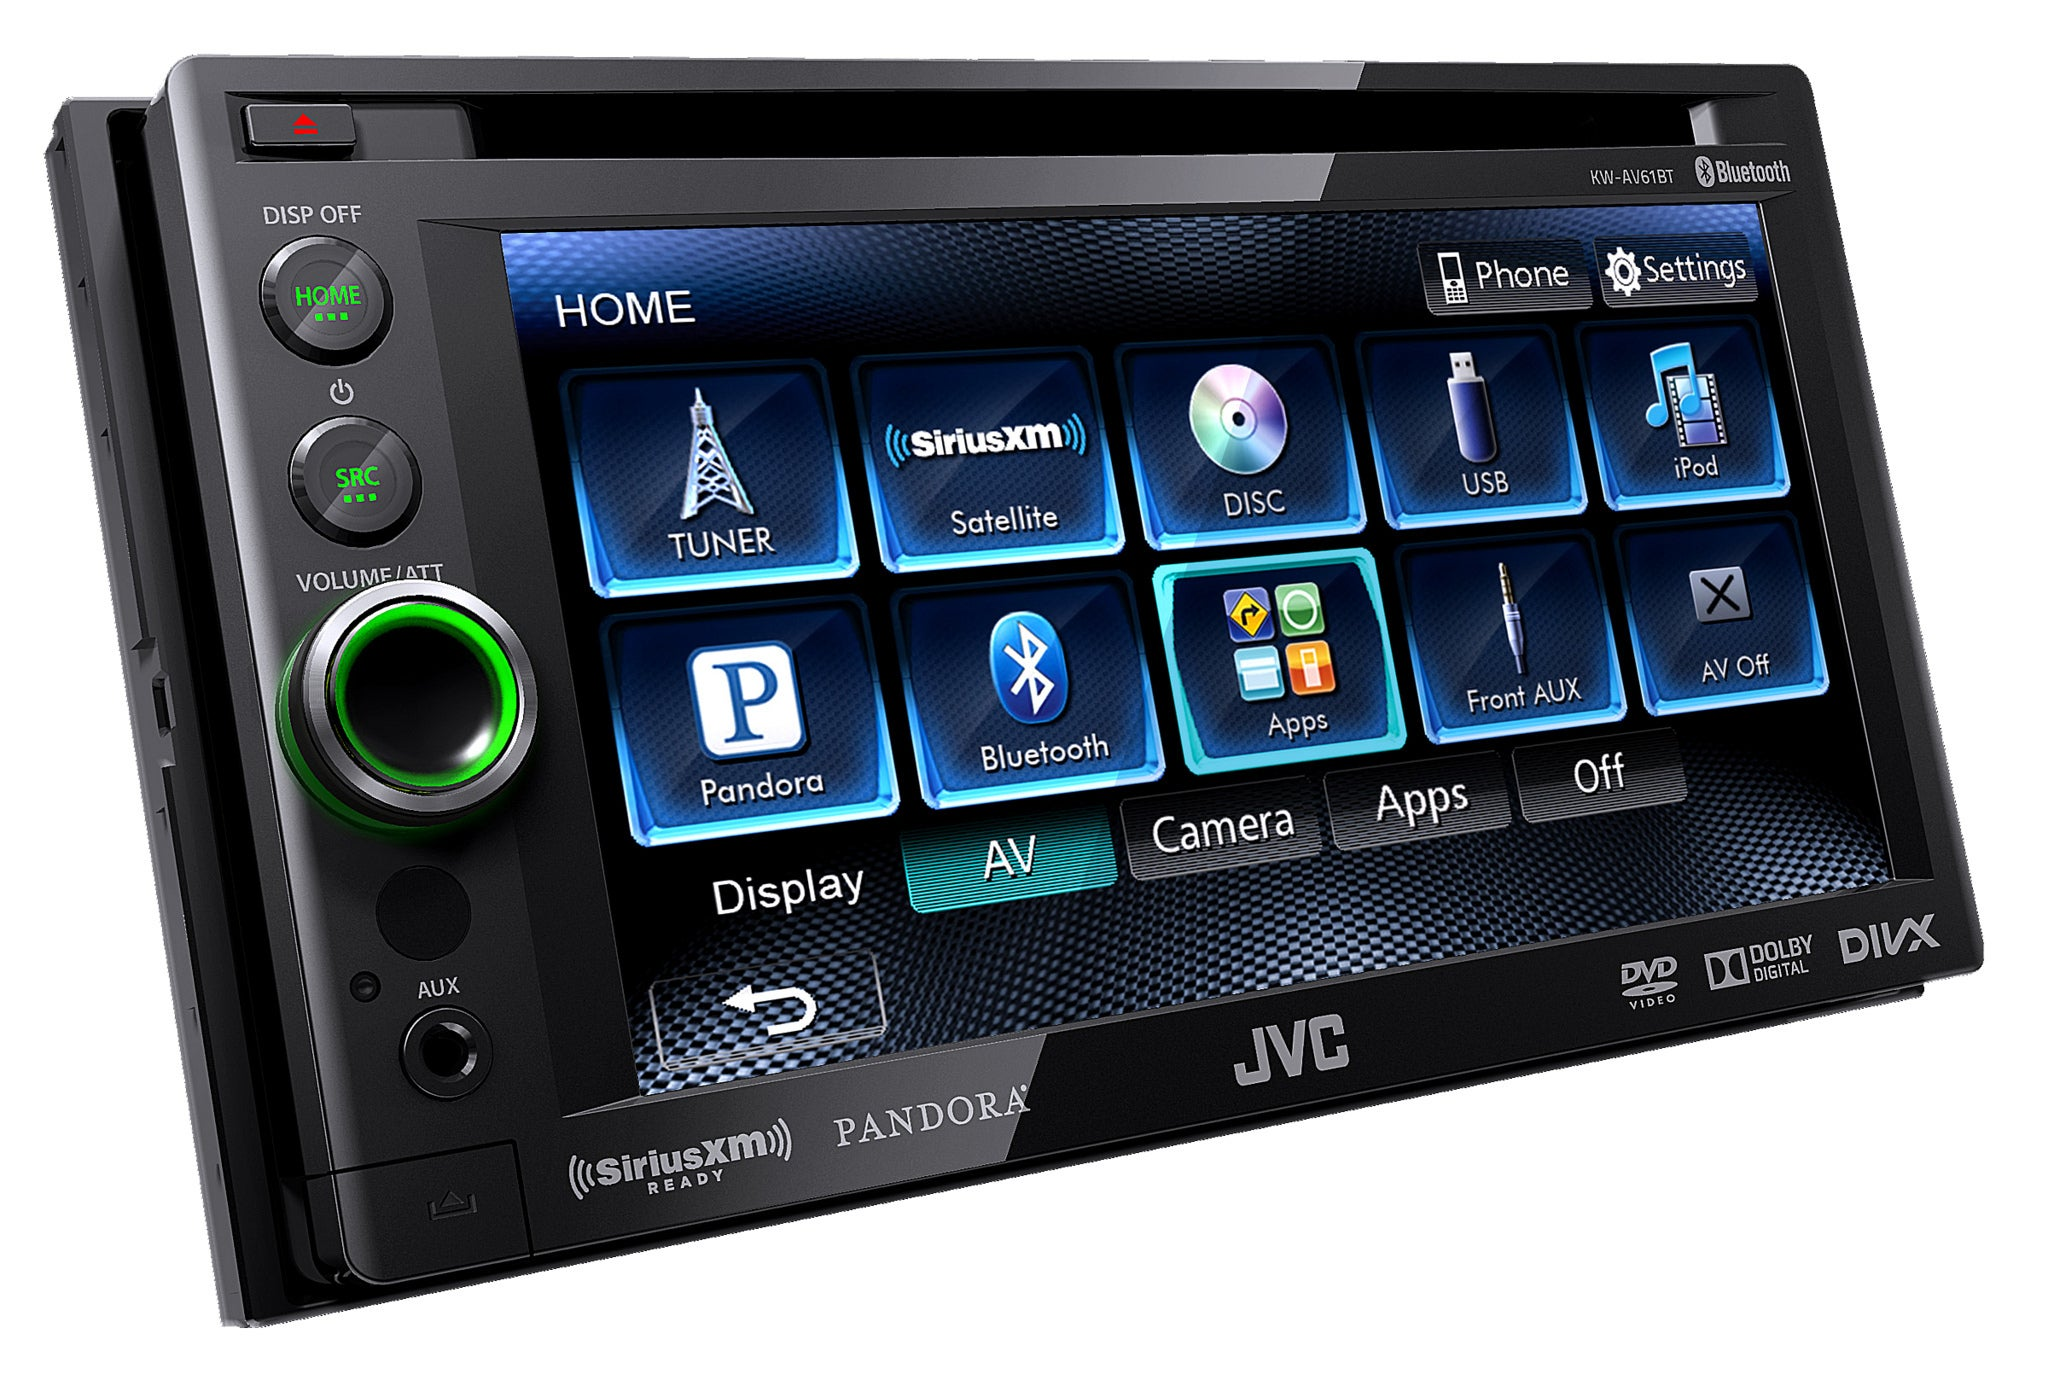 Jvc Car Stereo That Can Come Out